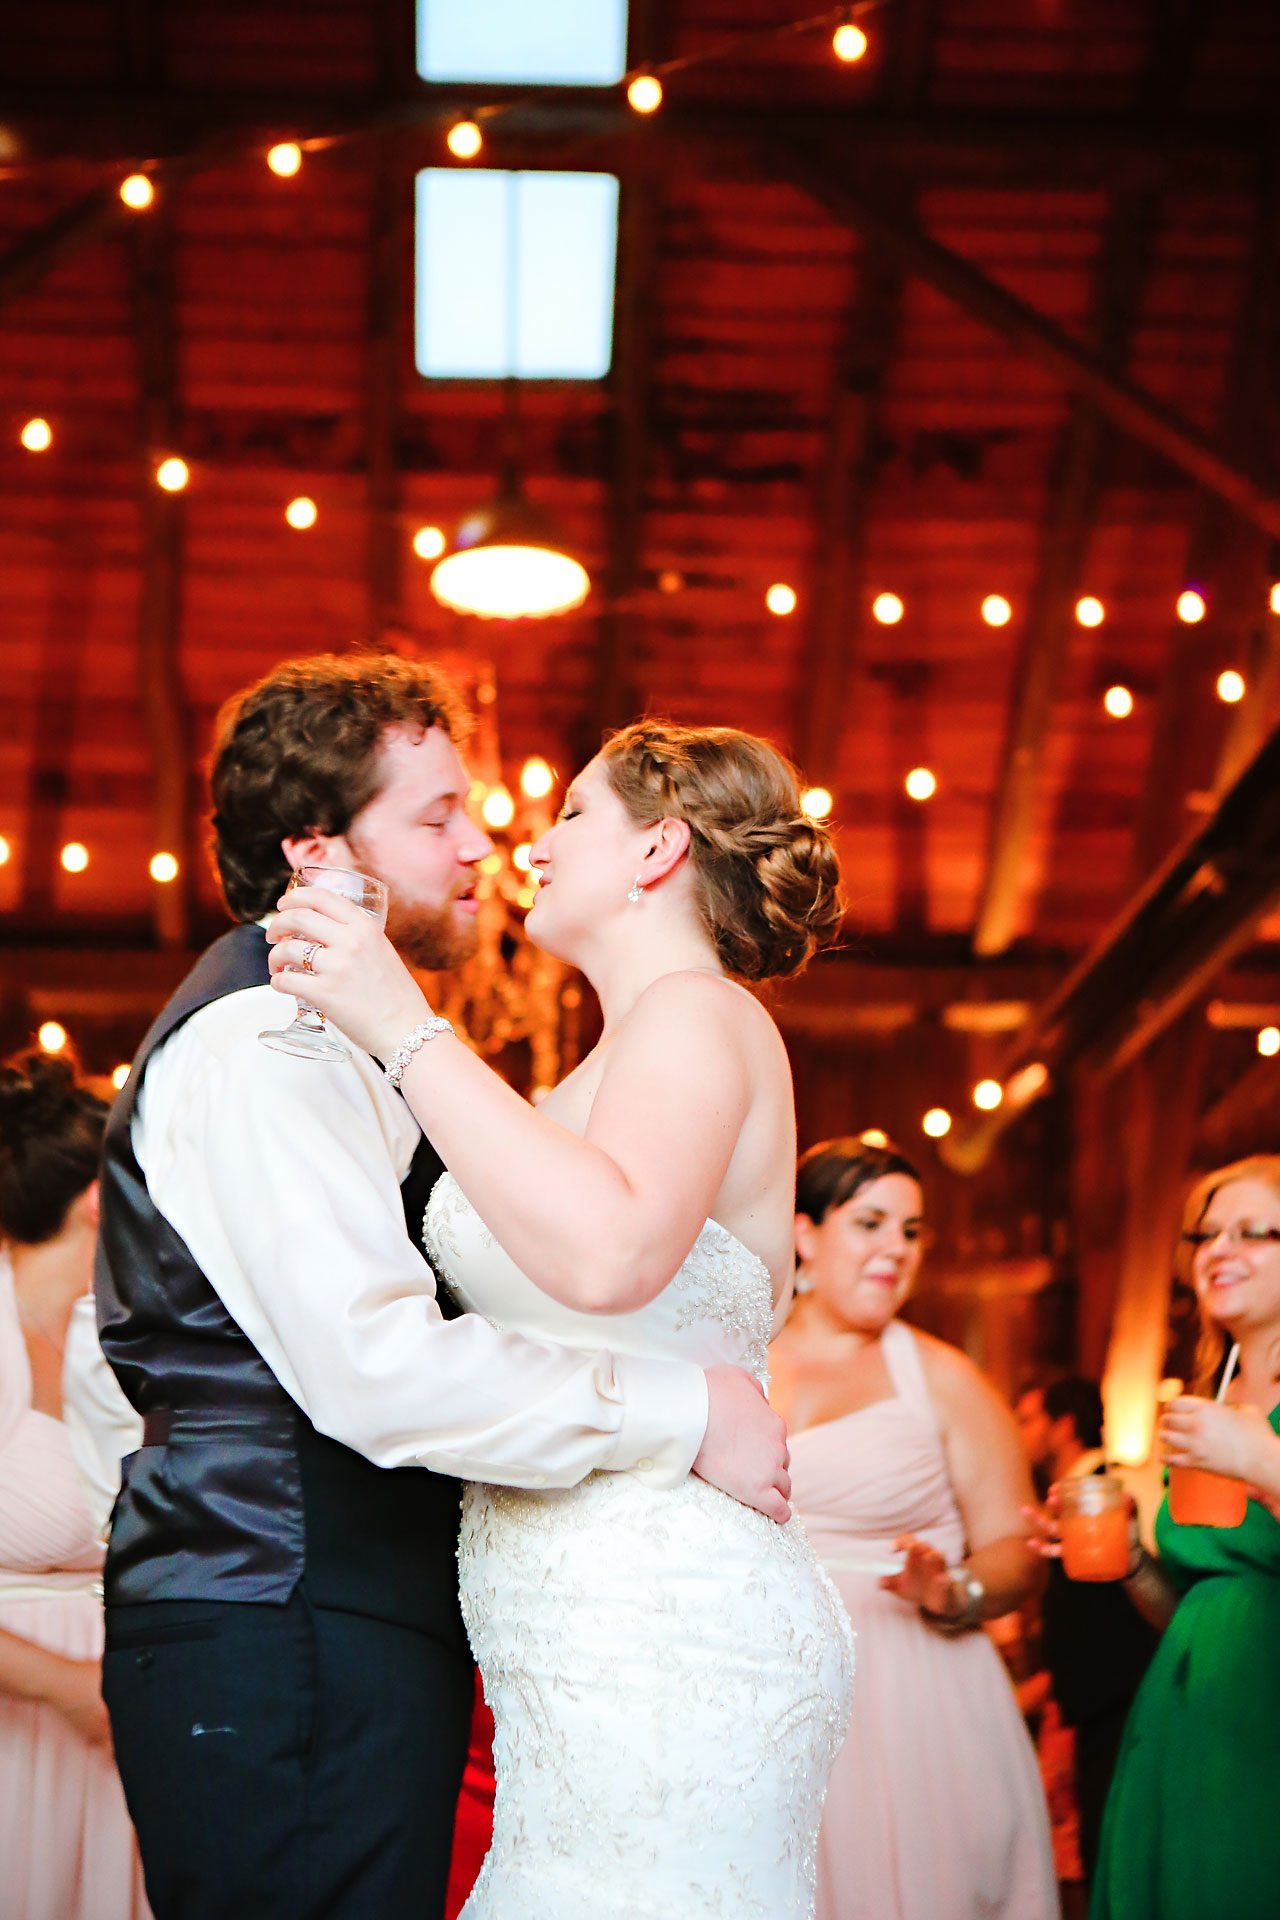 Nikki Weston Traders Point Creamery Zionsville Wedding 353